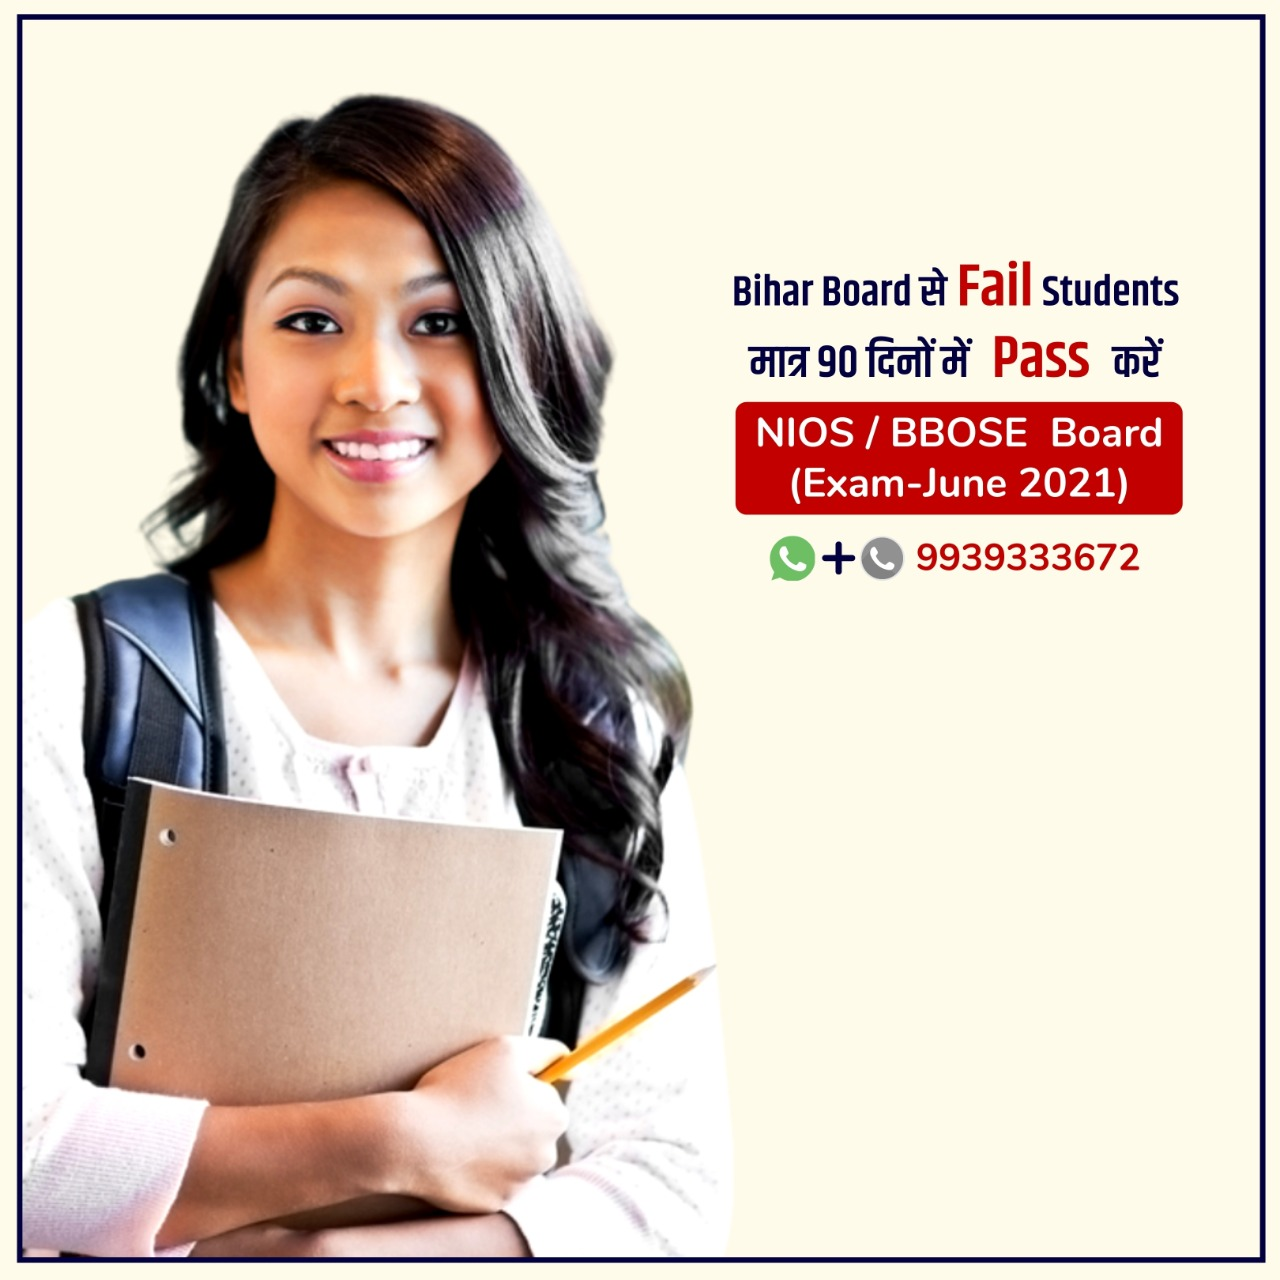 Best NIOS Study Centre in Bihar